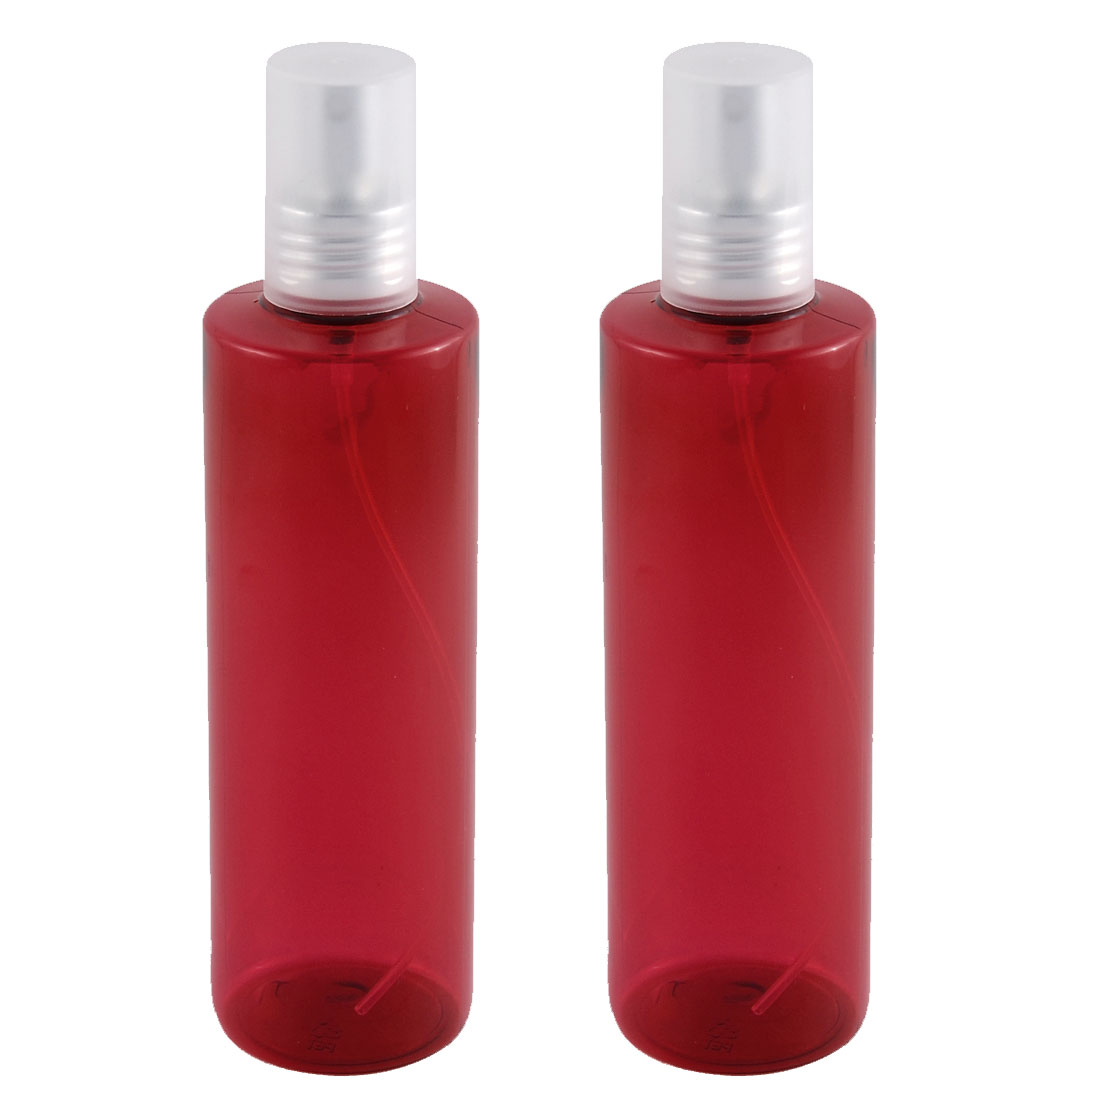 Traveling Plastic Shampoo Cosmetic Emulsion Press Pump Spray Bottle Red 250ml 2pcs